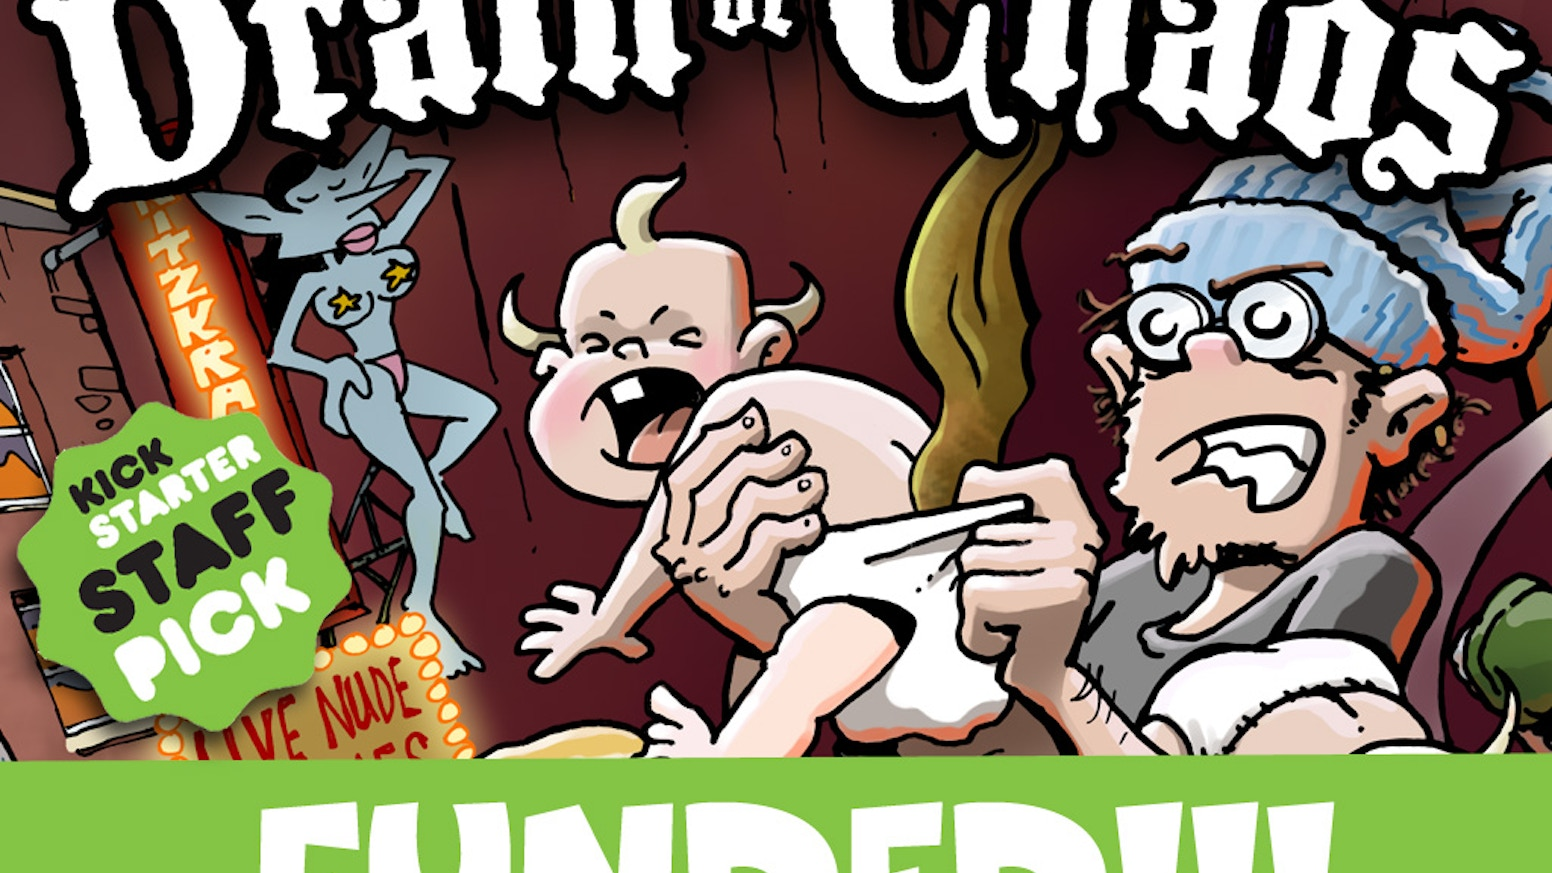 The epic comic-strip fantasy saga of an irresponsible wizard coping with fatherhood in a city gone mad!